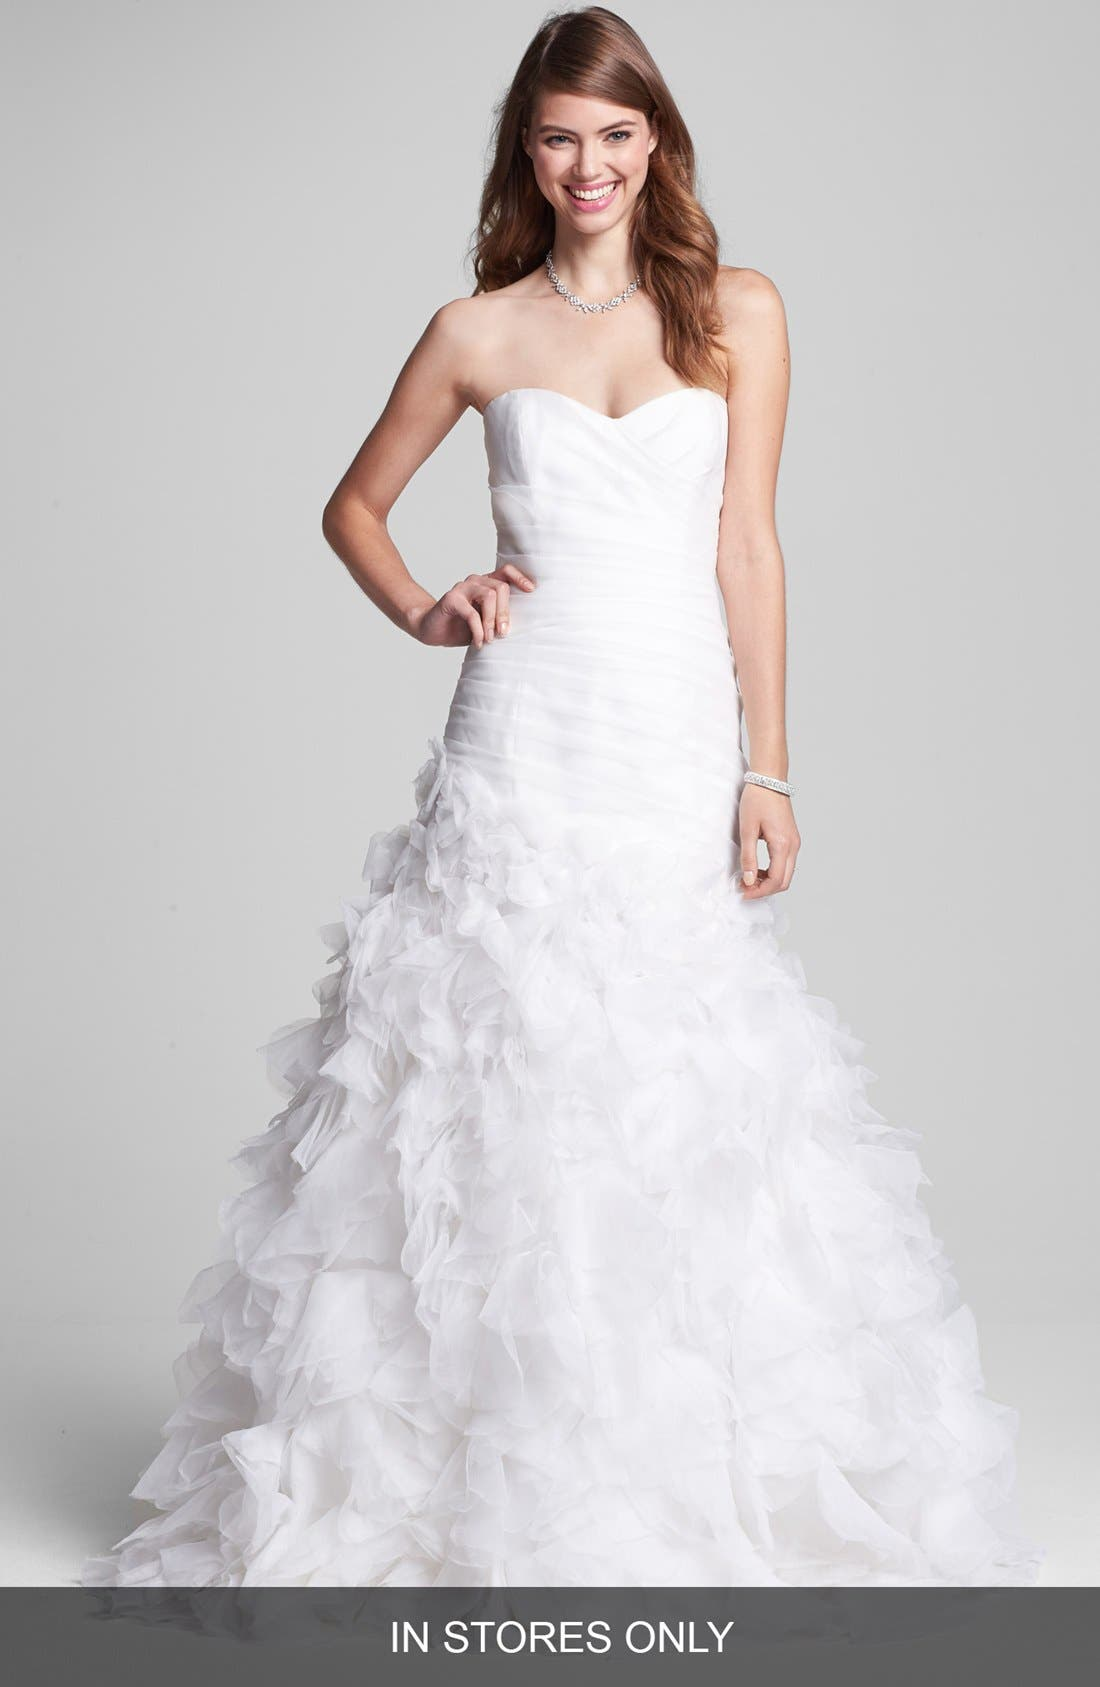 Alternate Image 1 Selected - BLISS Monique Lhuillier Ruffled Organza Mermaid Dress (In Stores Only)